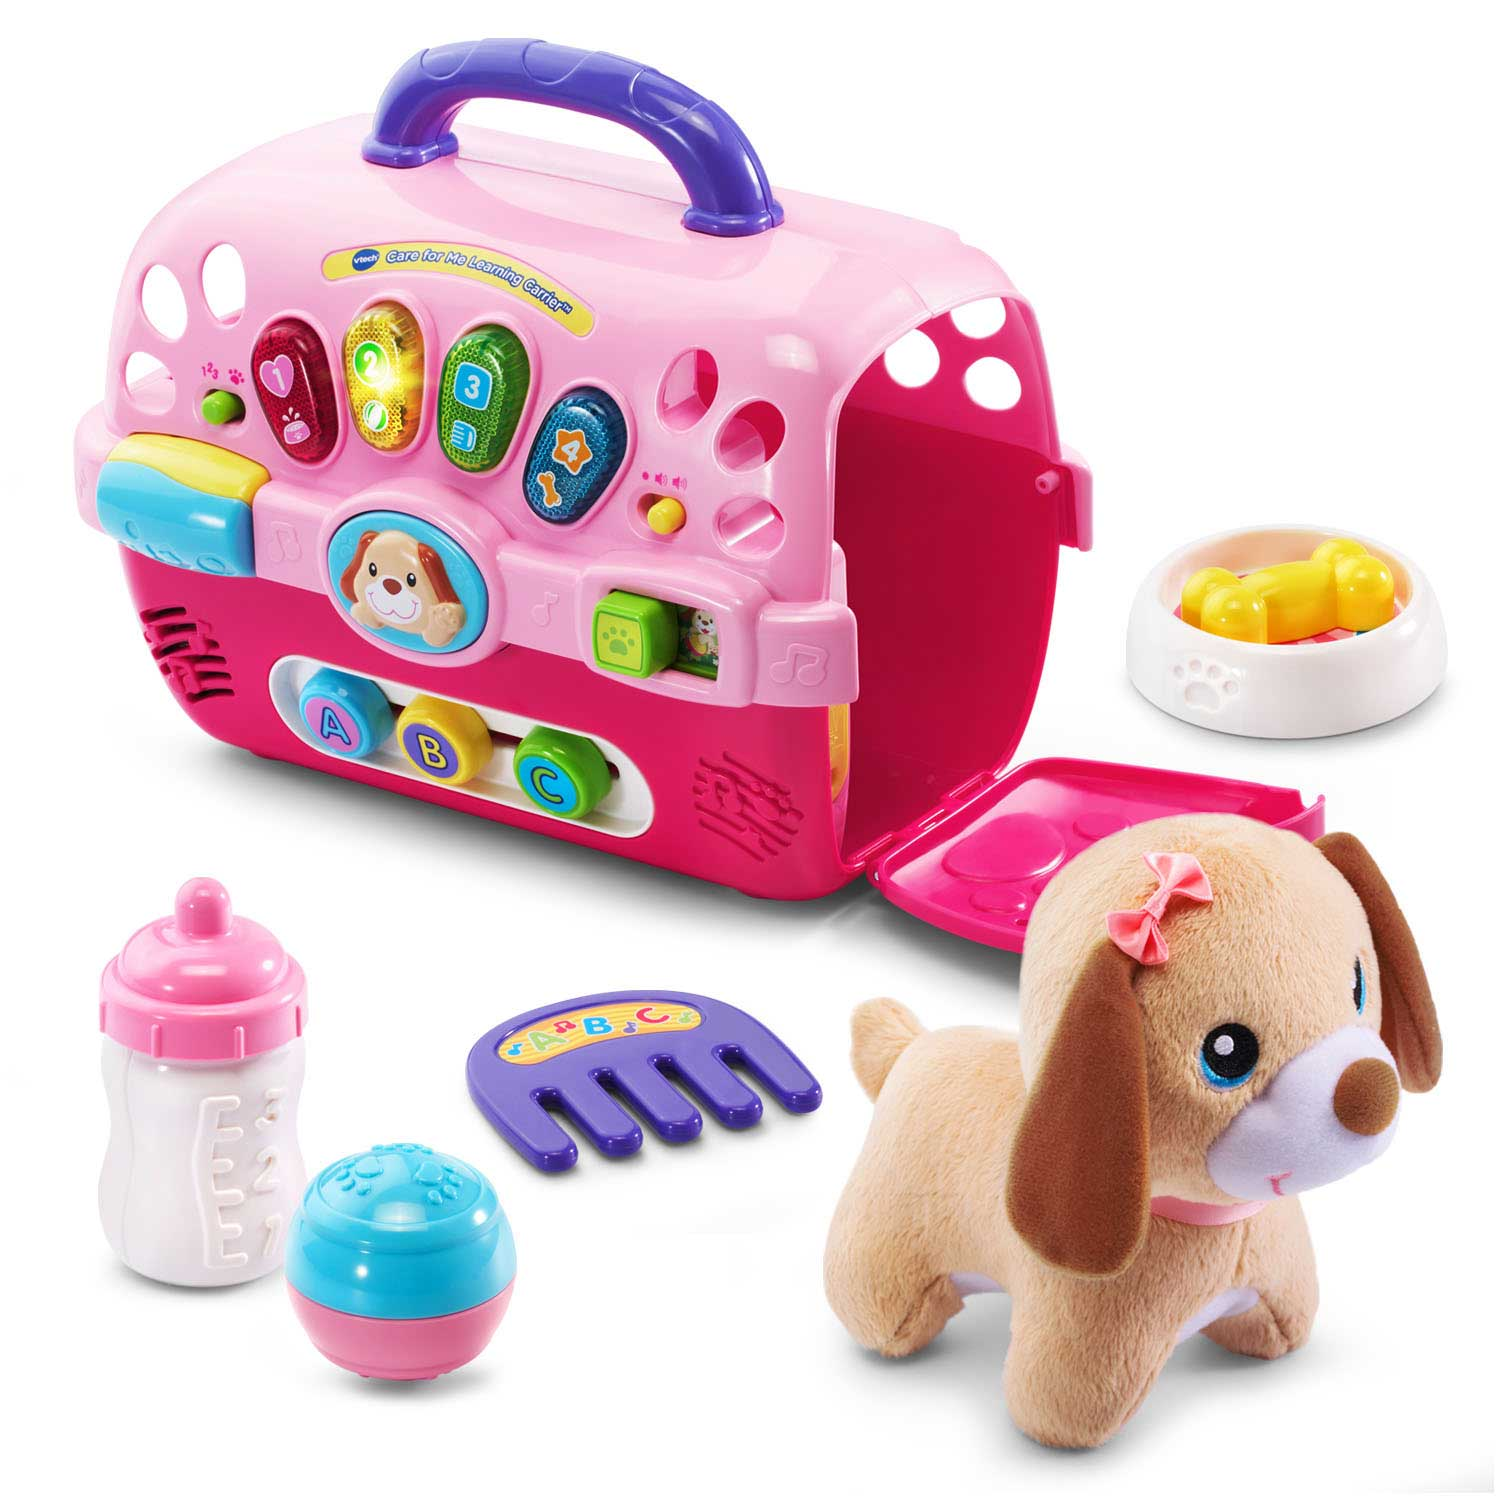 Latest Educational Toys : Vtech adds exciting new products to award winning baby